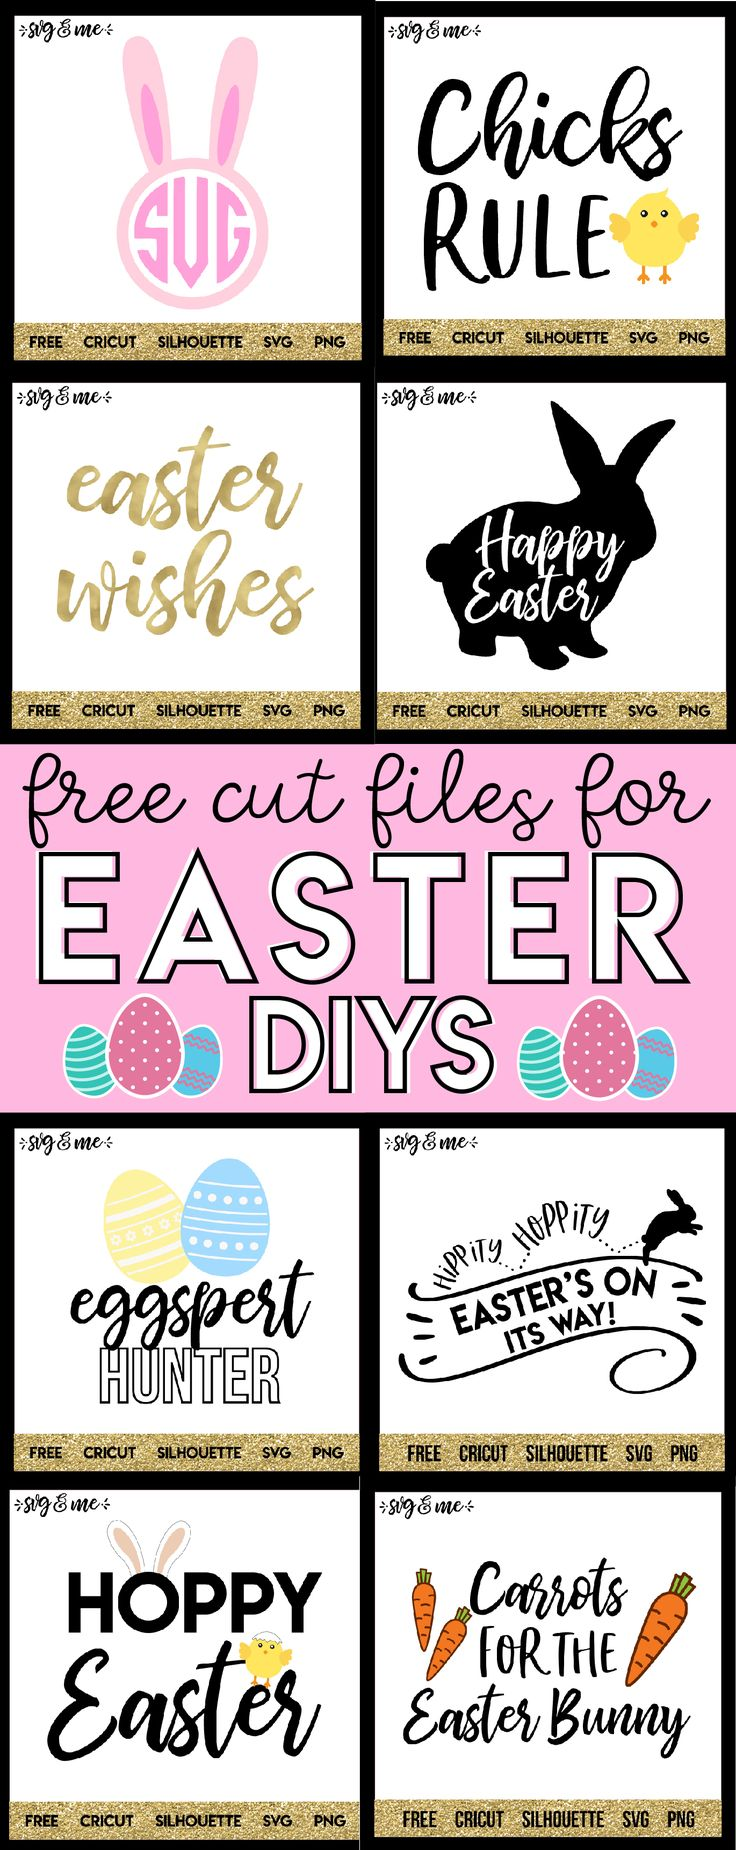 YAY! Free SVG cut files to make DIY Easter decor projects - so much easier! I can make these with my Cricut (or if you have a Silhouette) in seriously minutes!! Could also make them into practically instant free printables. #easter #cricut #silhouette